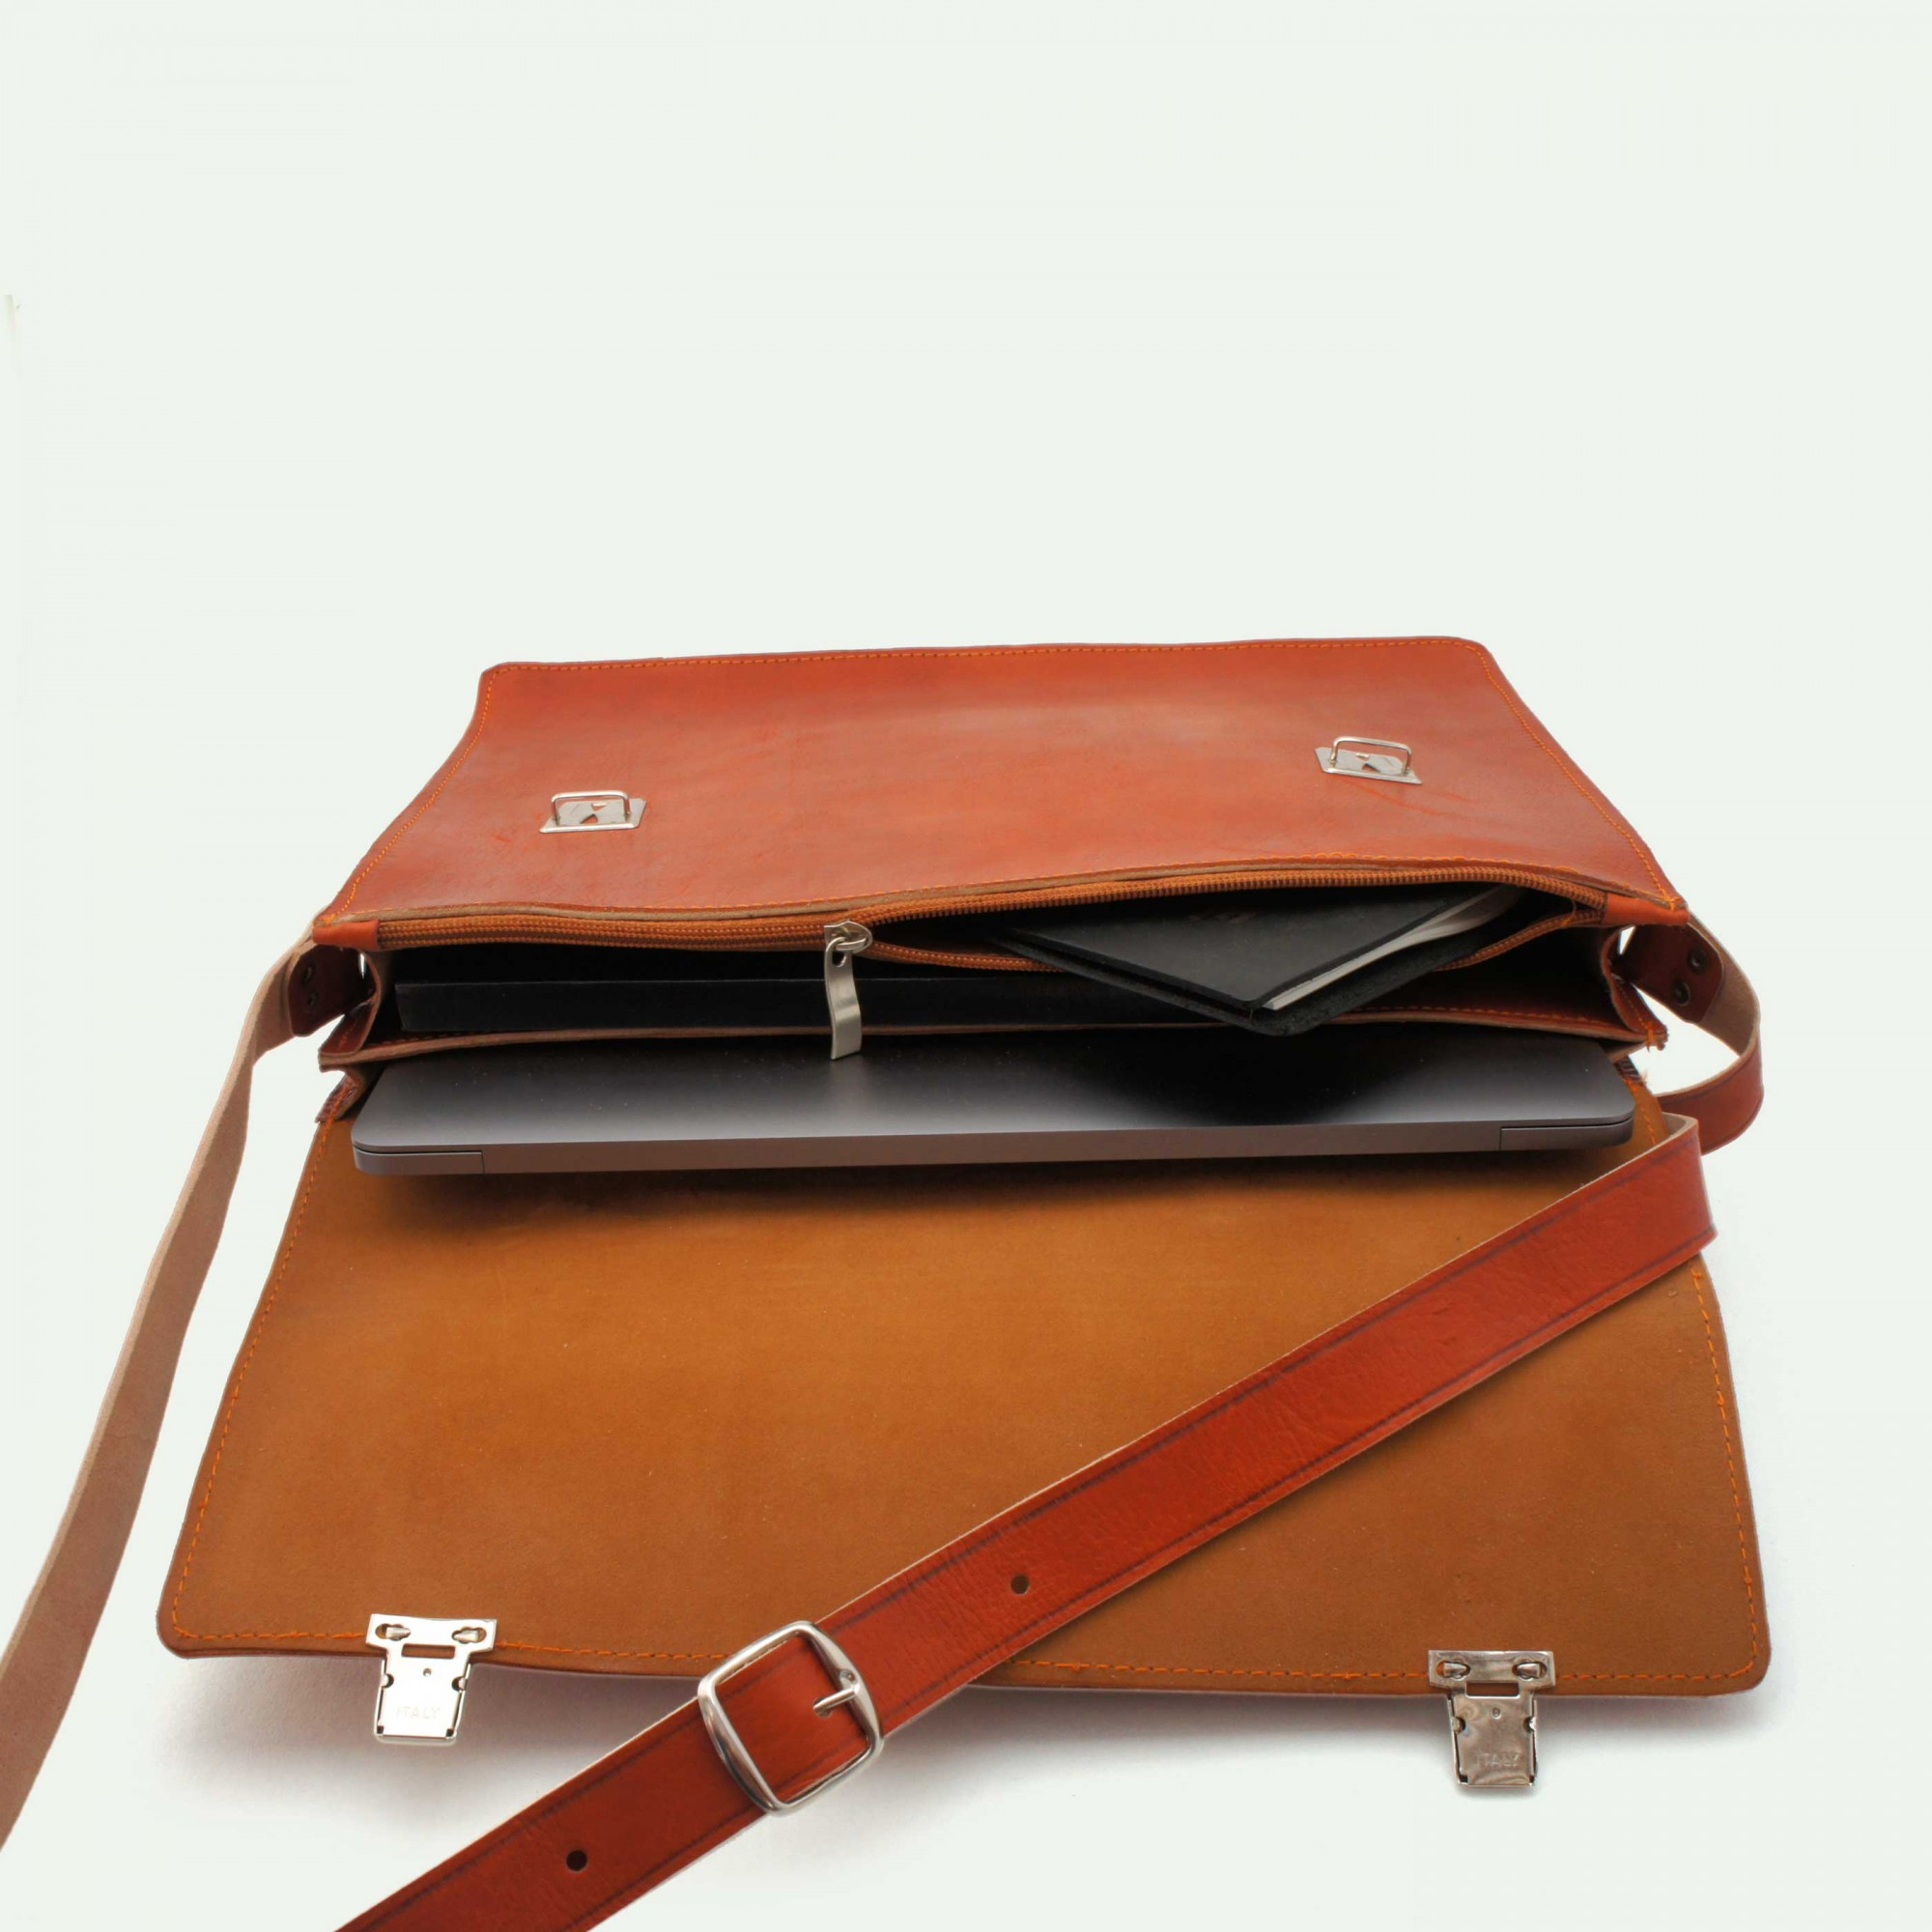 c05b084f062 Farfar: Laptop briefcase 13inch